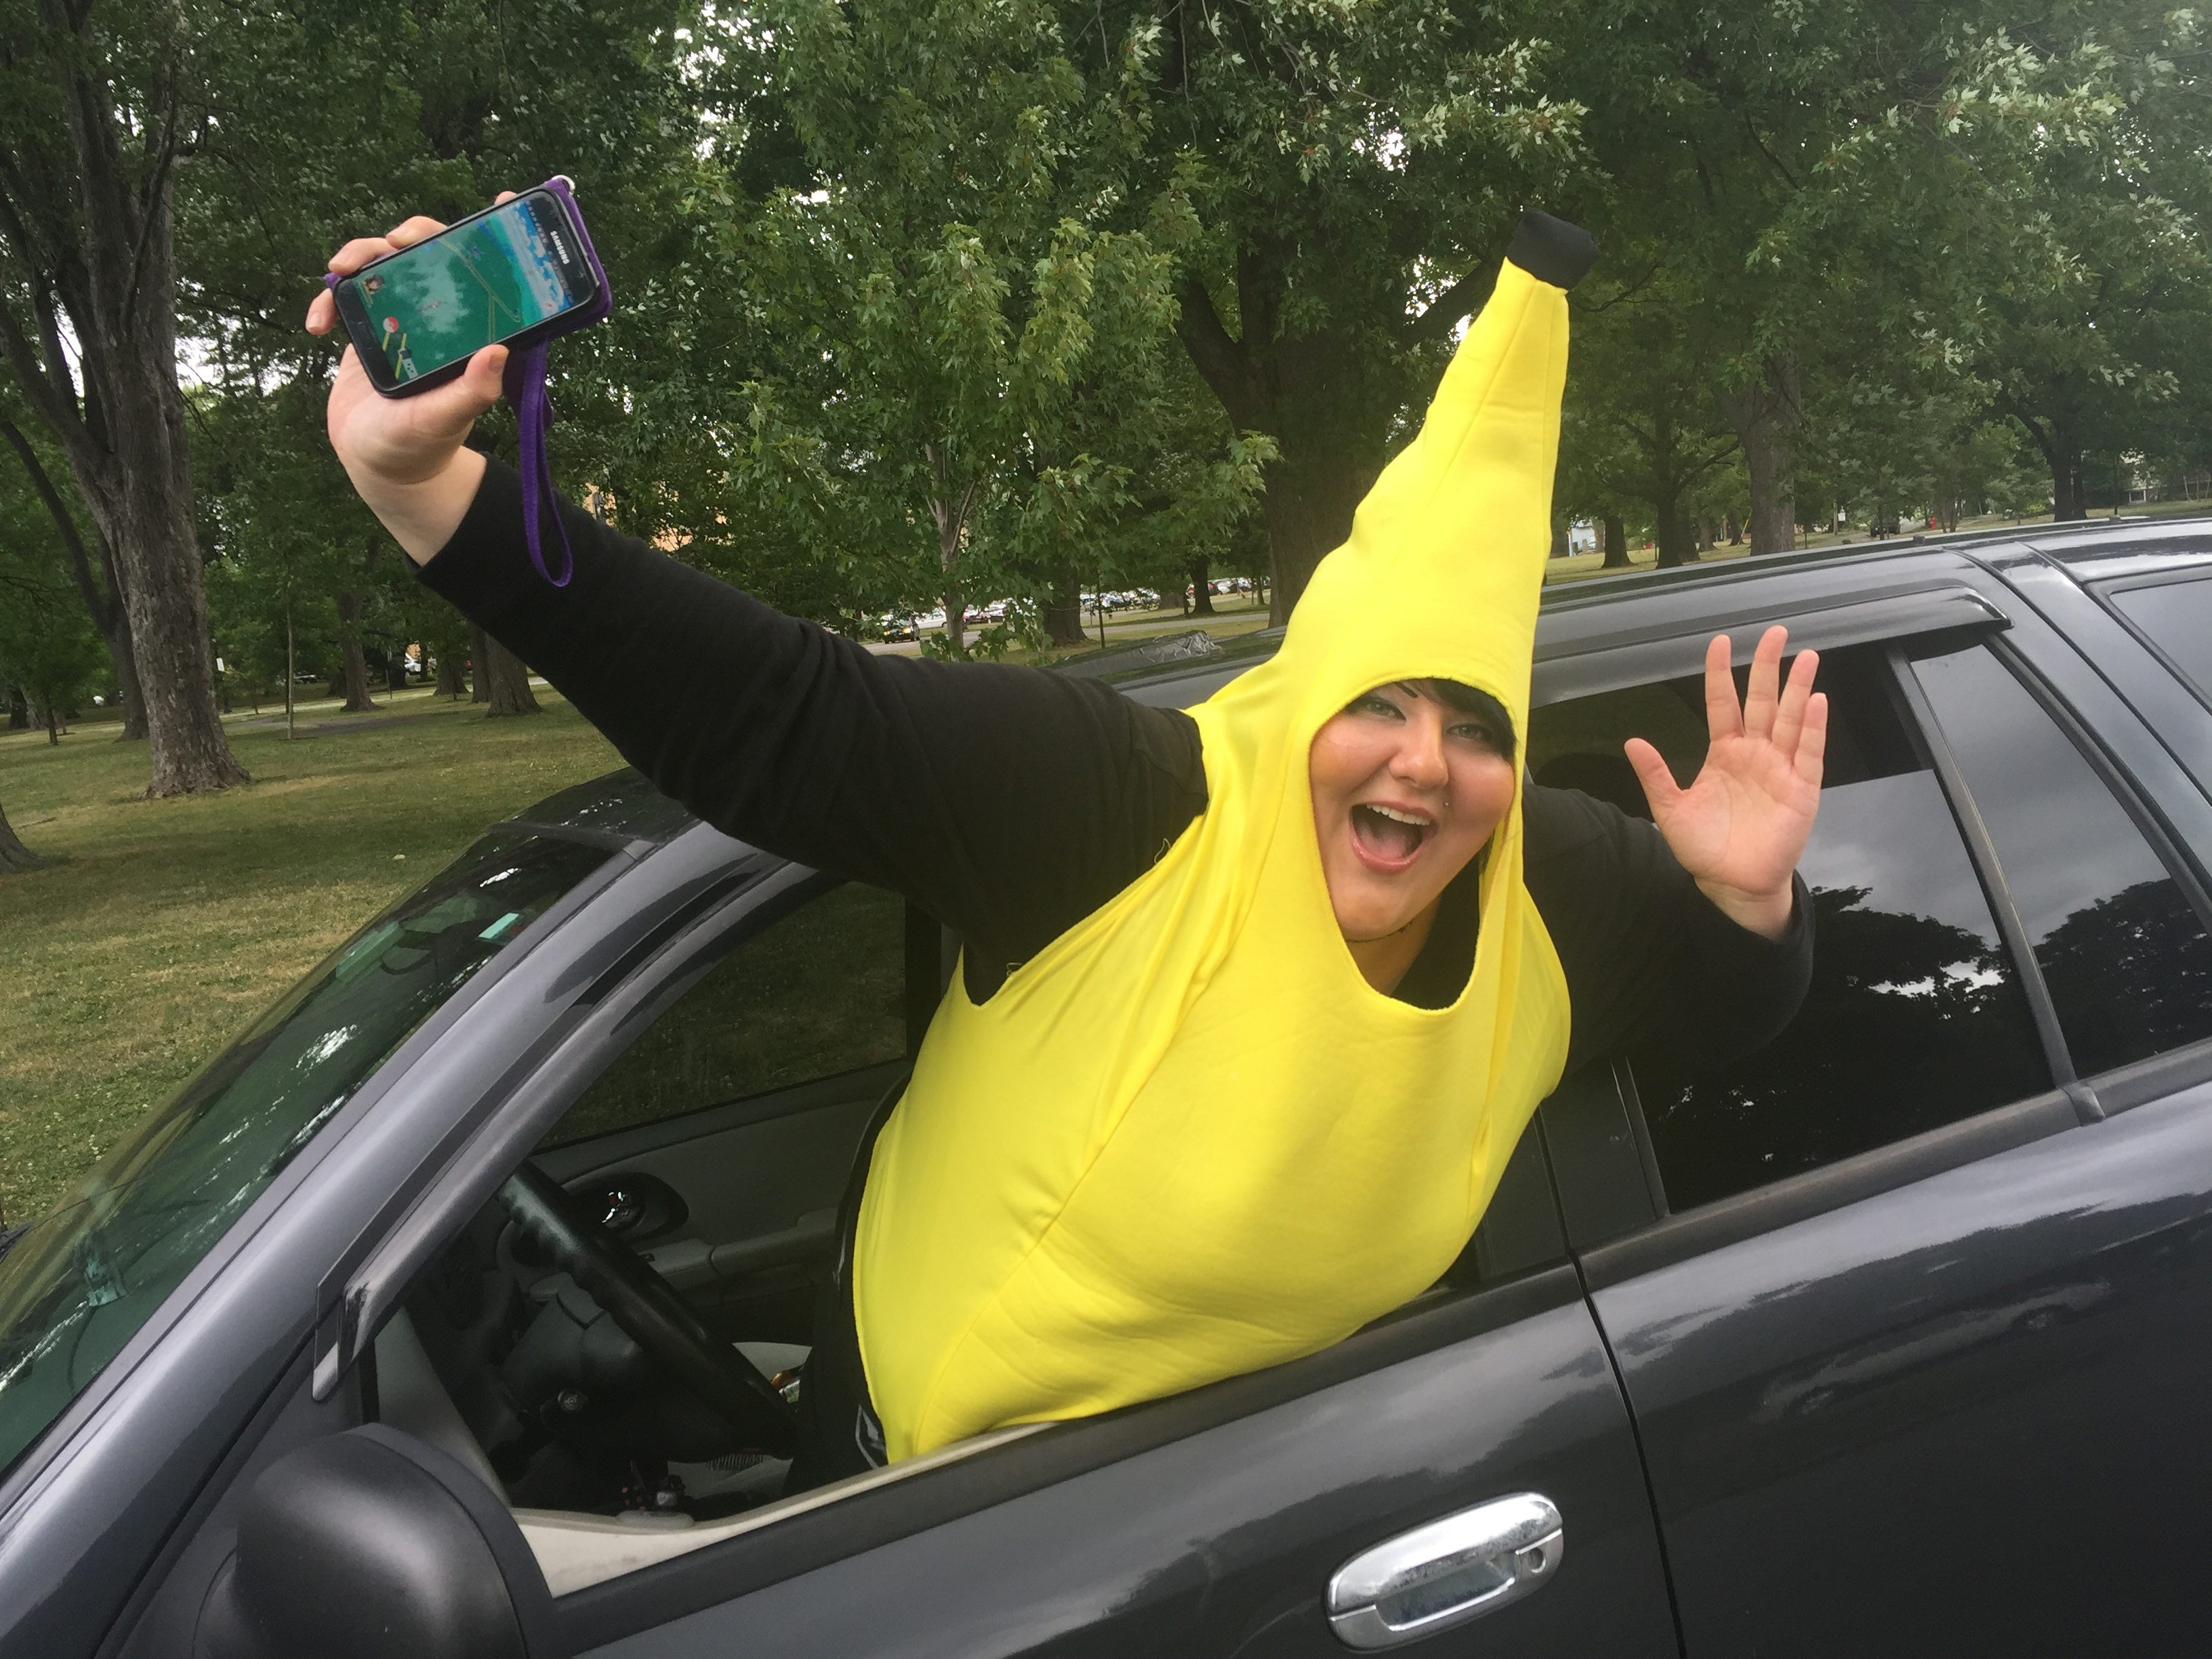 """Sarah """"Bananamama"""" Nowak advertises her chauffeur service for players of Pokémon Go, the popular augmented reality smartphone game. Nowak drives players from place to place so they can collect characters at different locales. Here she is at Cazenovia Park, Thursday."""